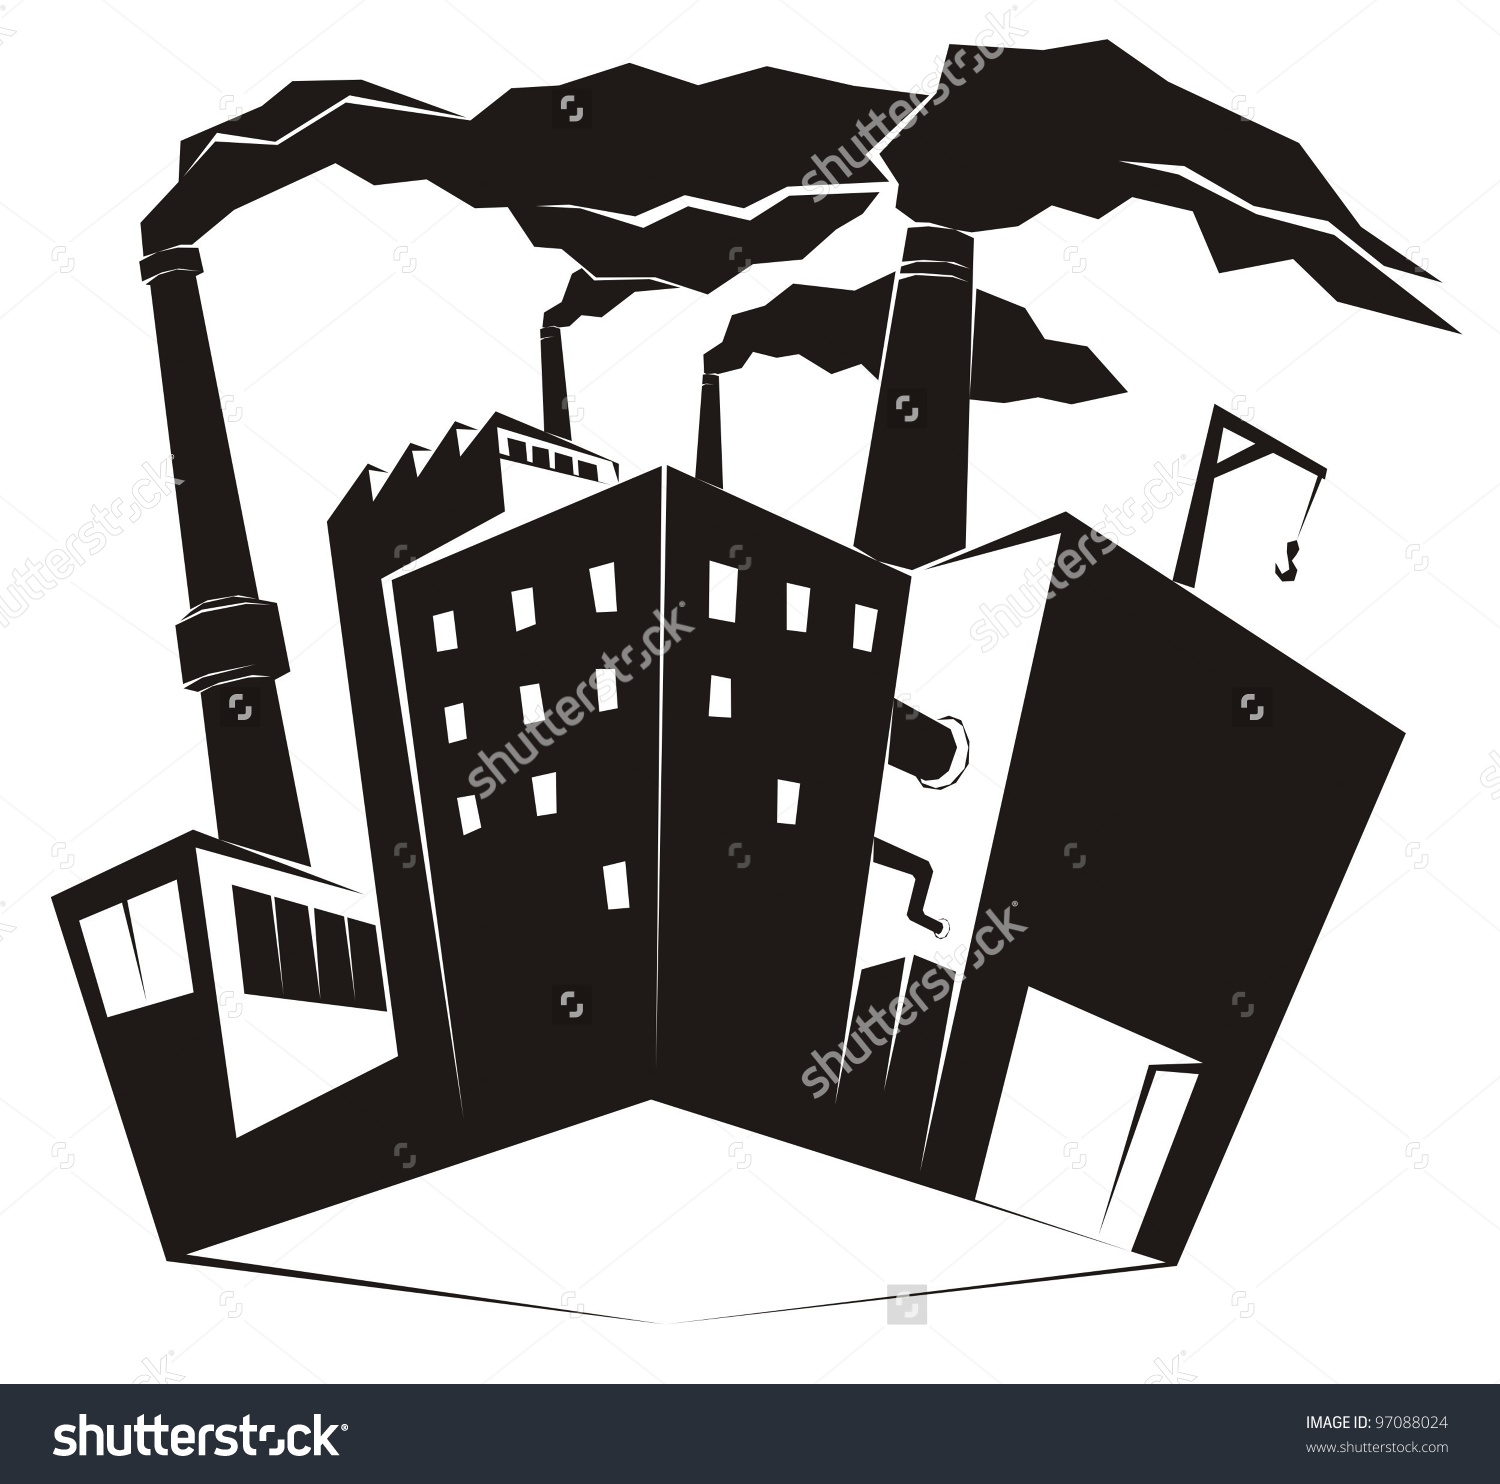 Chimney stack clipart #3